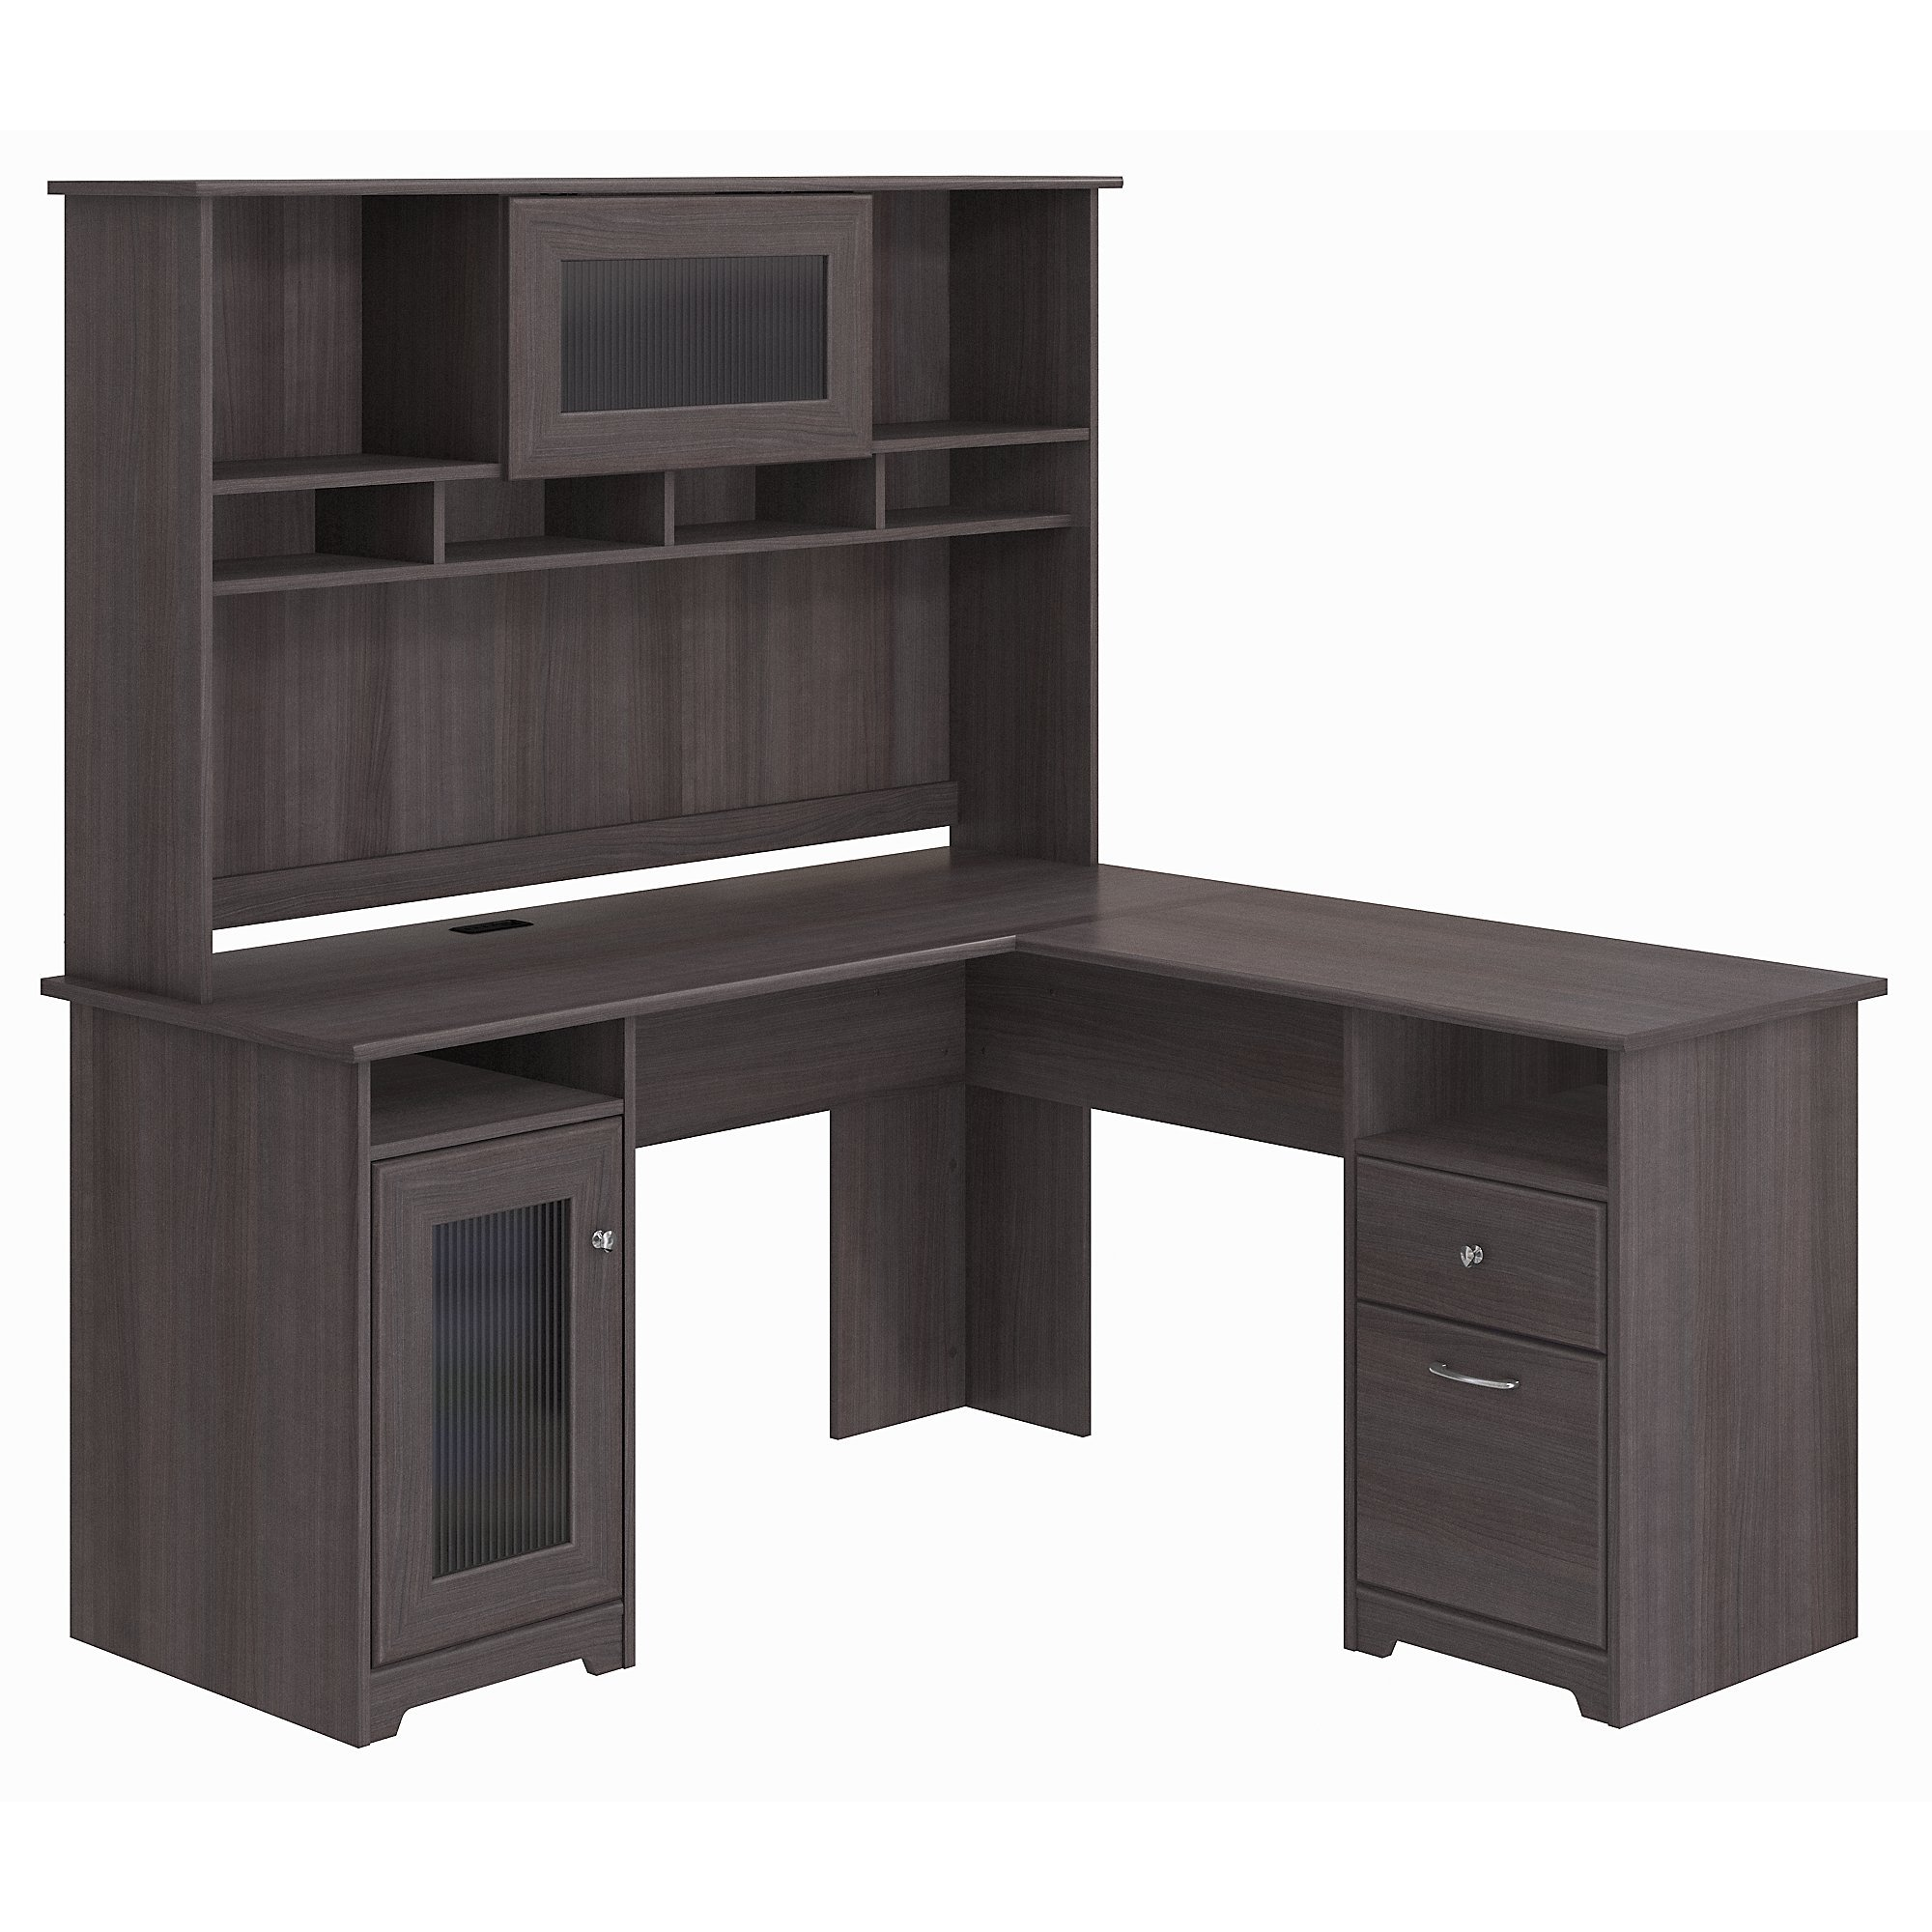 Bush Furniture Cabot L Shaped Desk with Hutch in Heather Gray by Bush Furniture